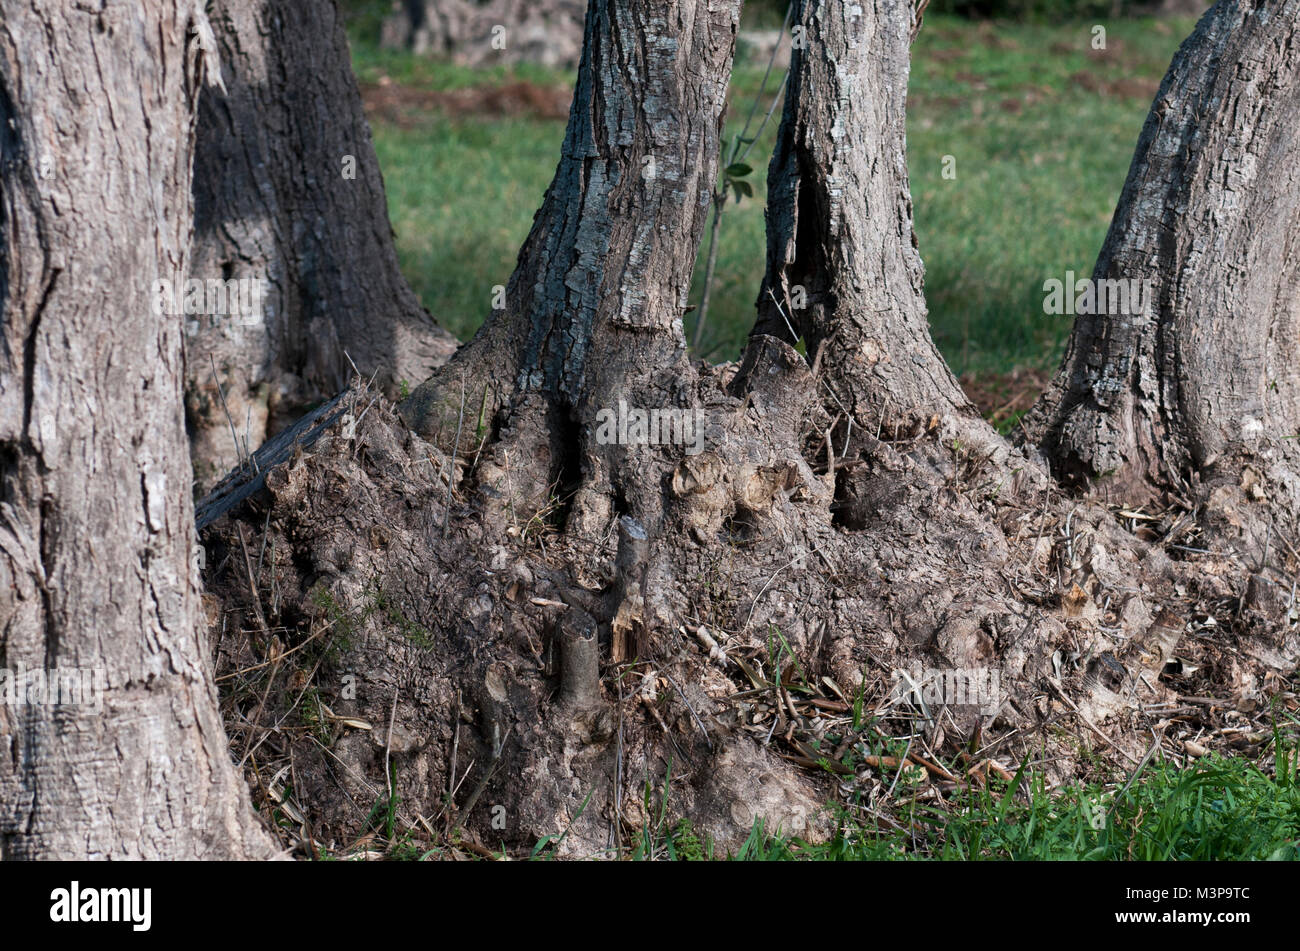 olive tree roots - Stock Image